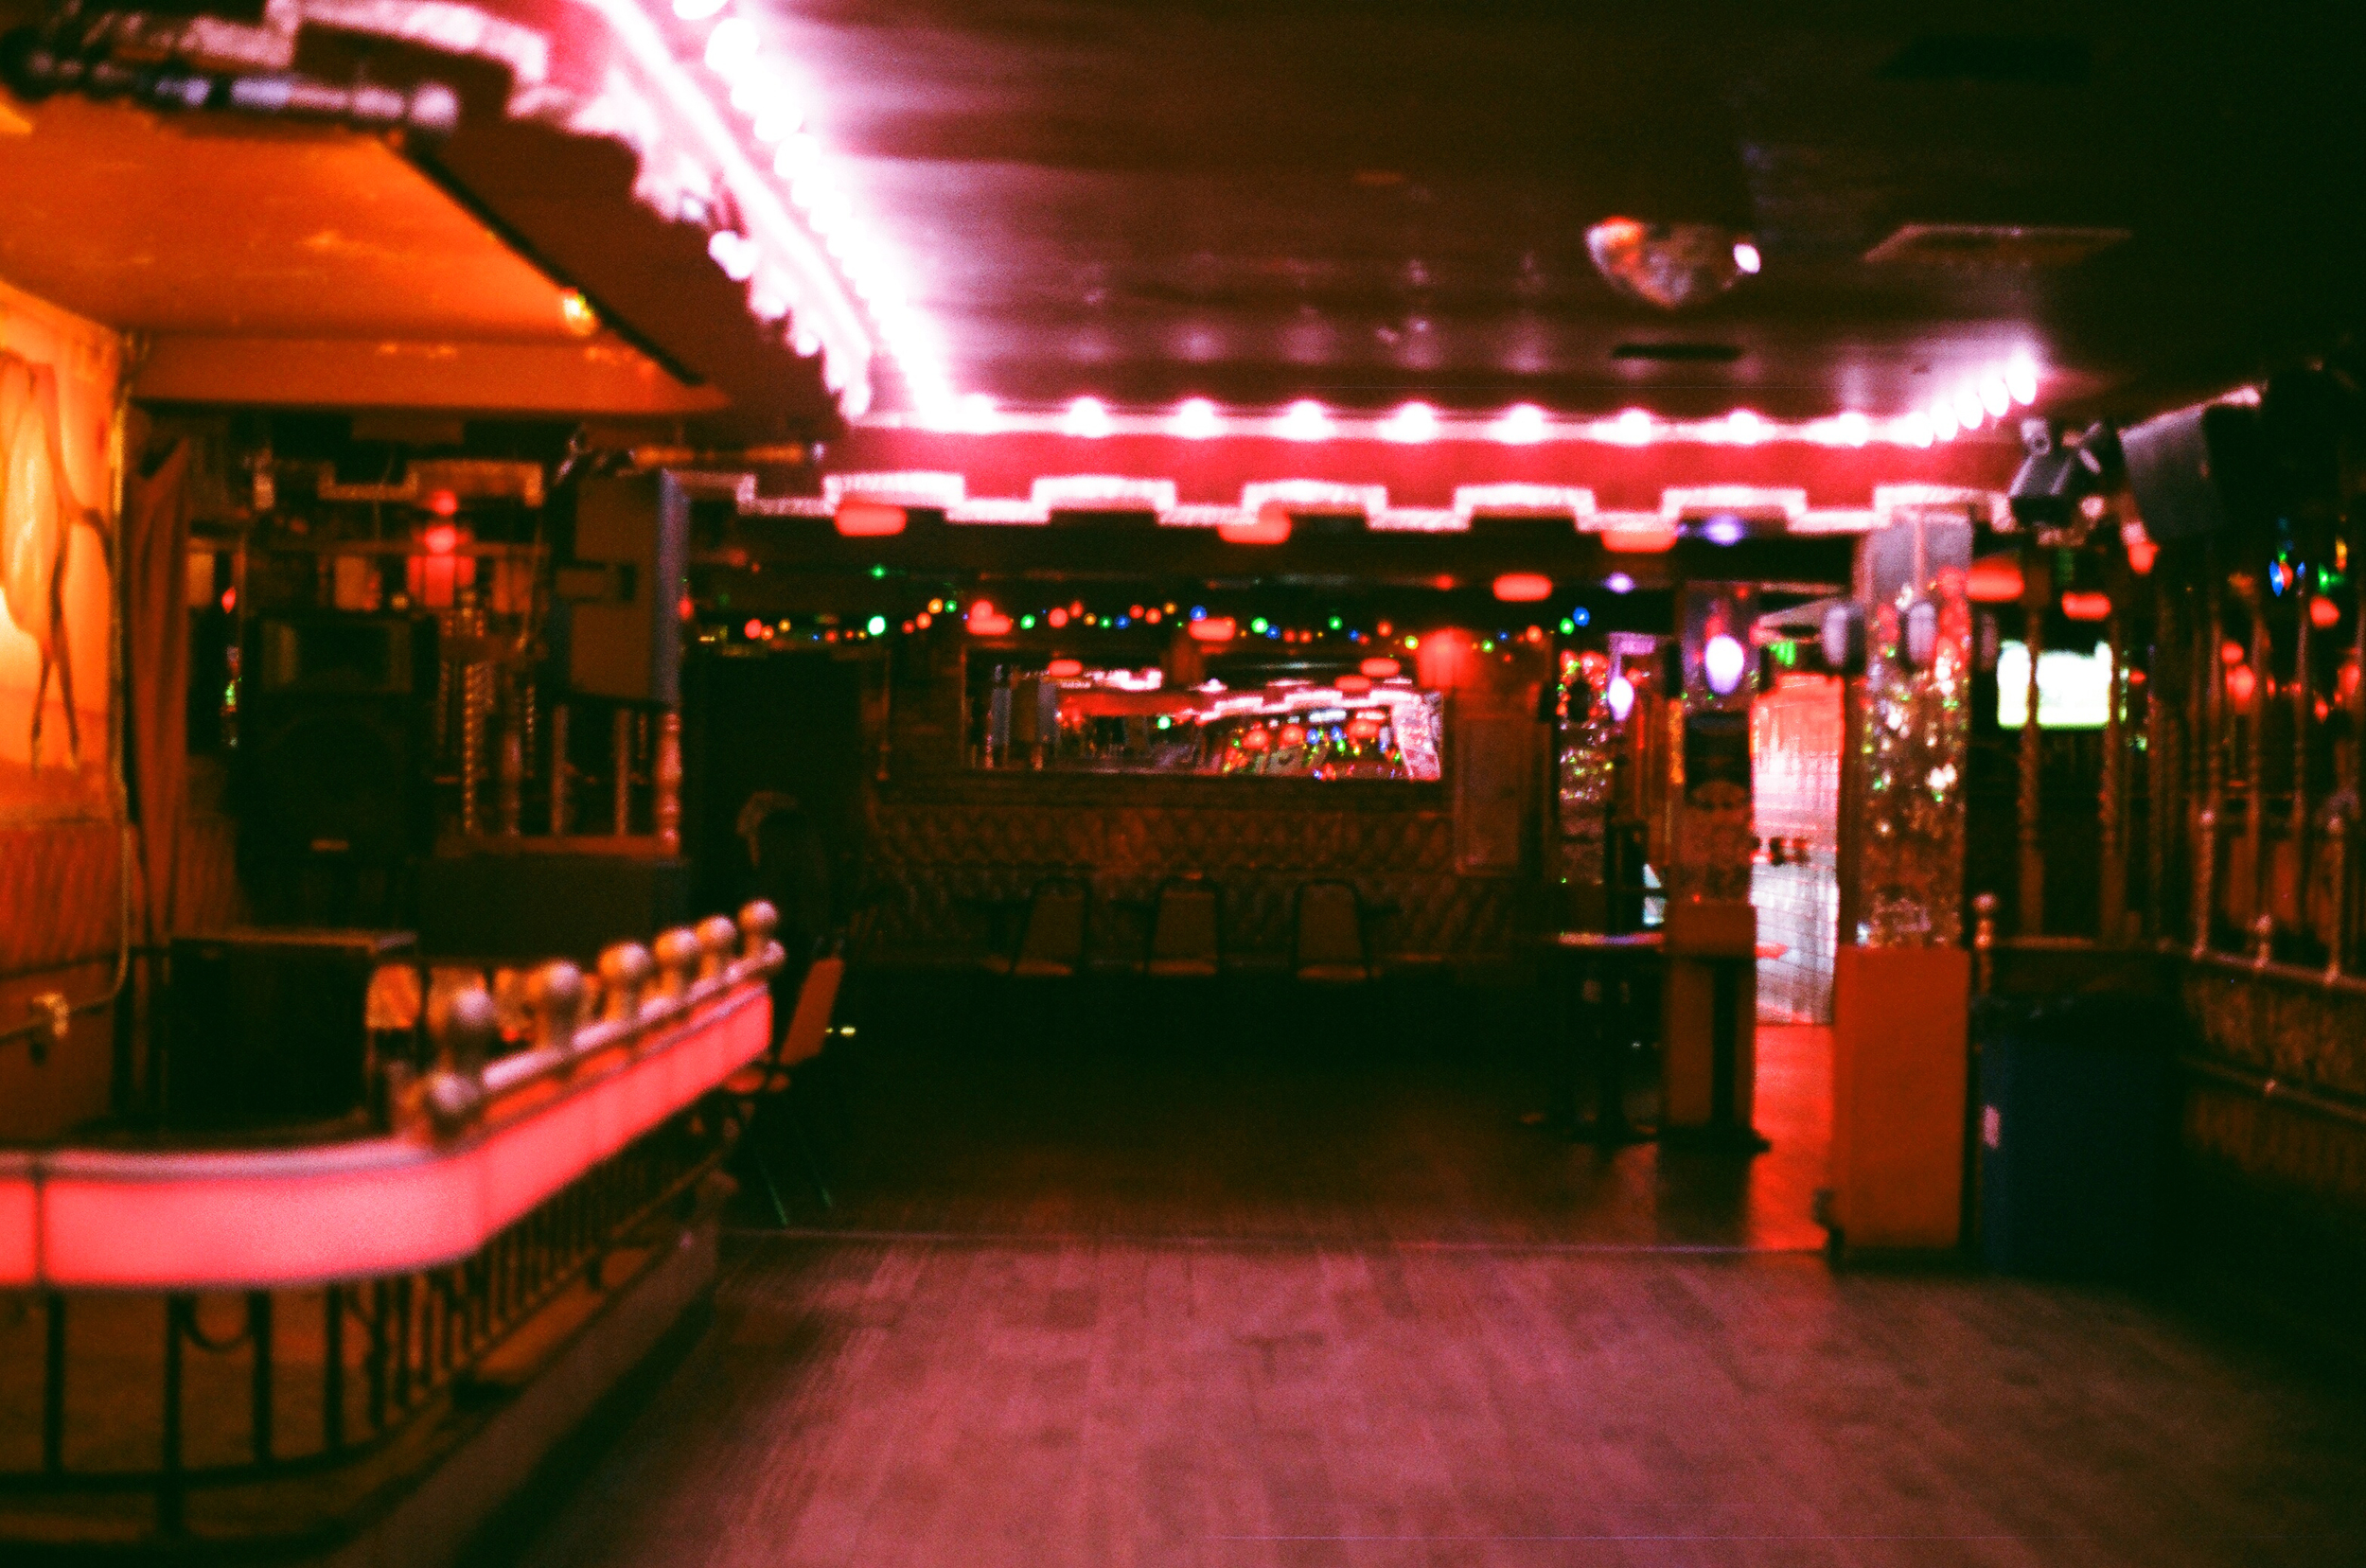 Empty dance floor. La Cita, Downtown Los Angeles. 35mm.